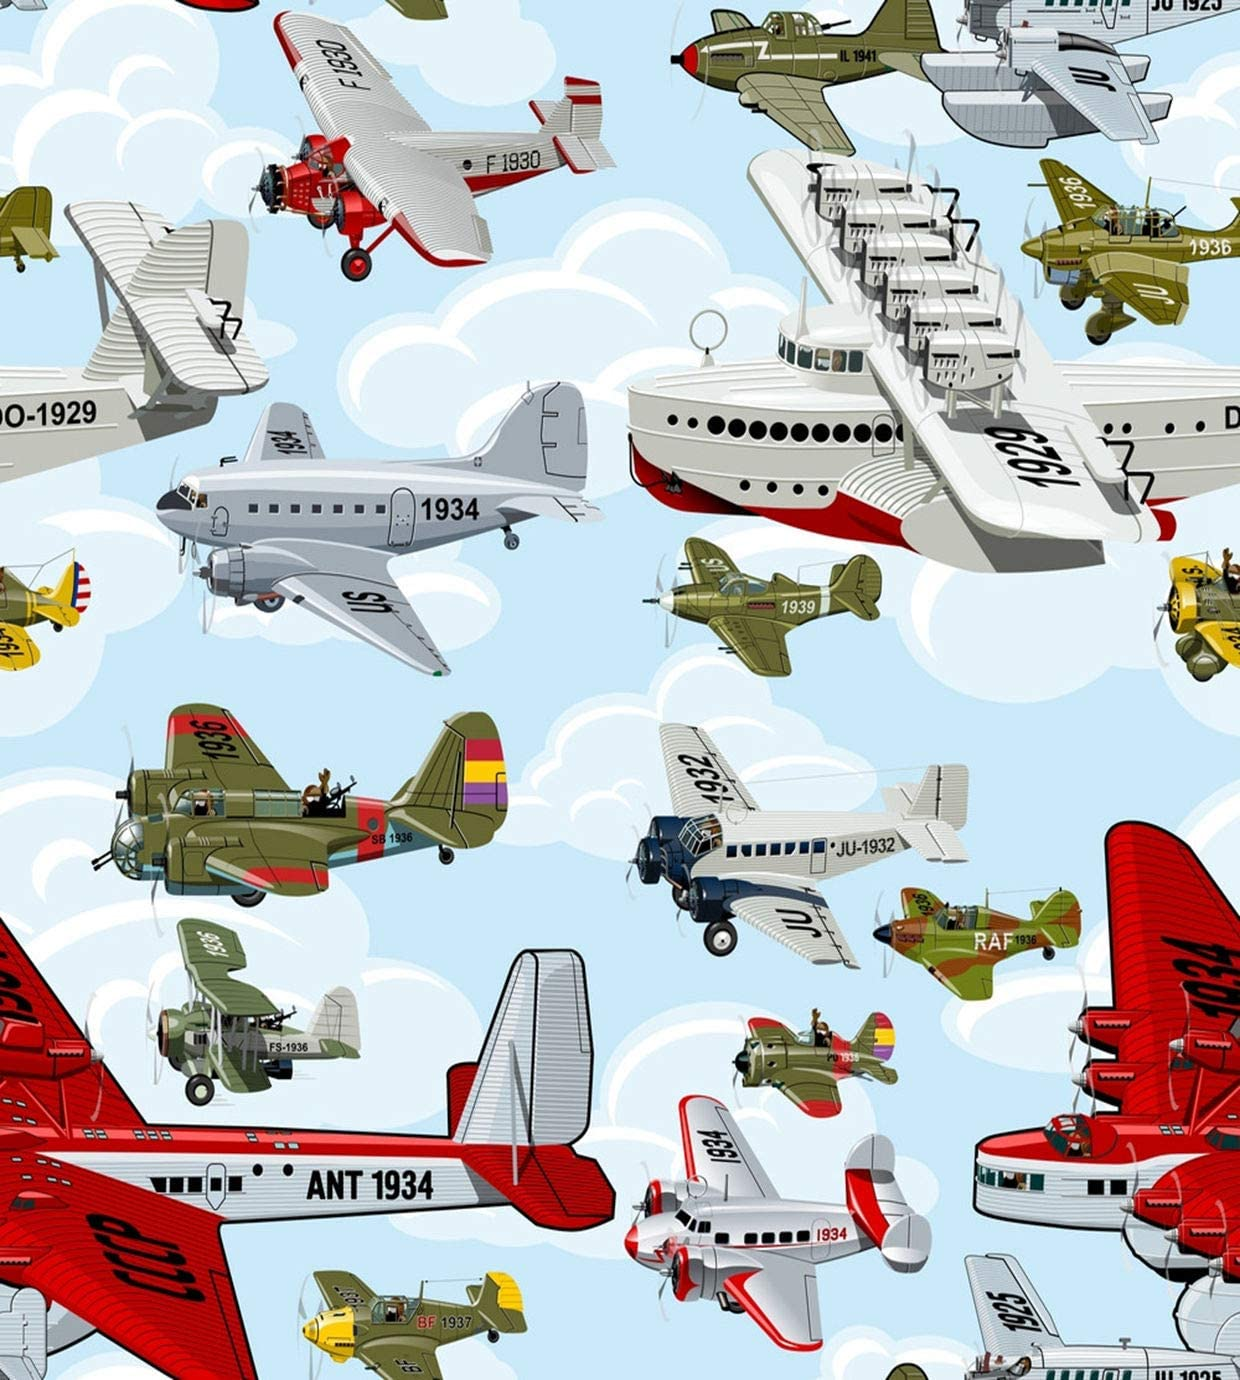 Eaiizer Airplane Poster Cartoon Retro Airplanes 1930S Clouds Wall Art Print Artwork for Home Bedroom Office Dorm Decor Unframed Painting 24x36 Inches